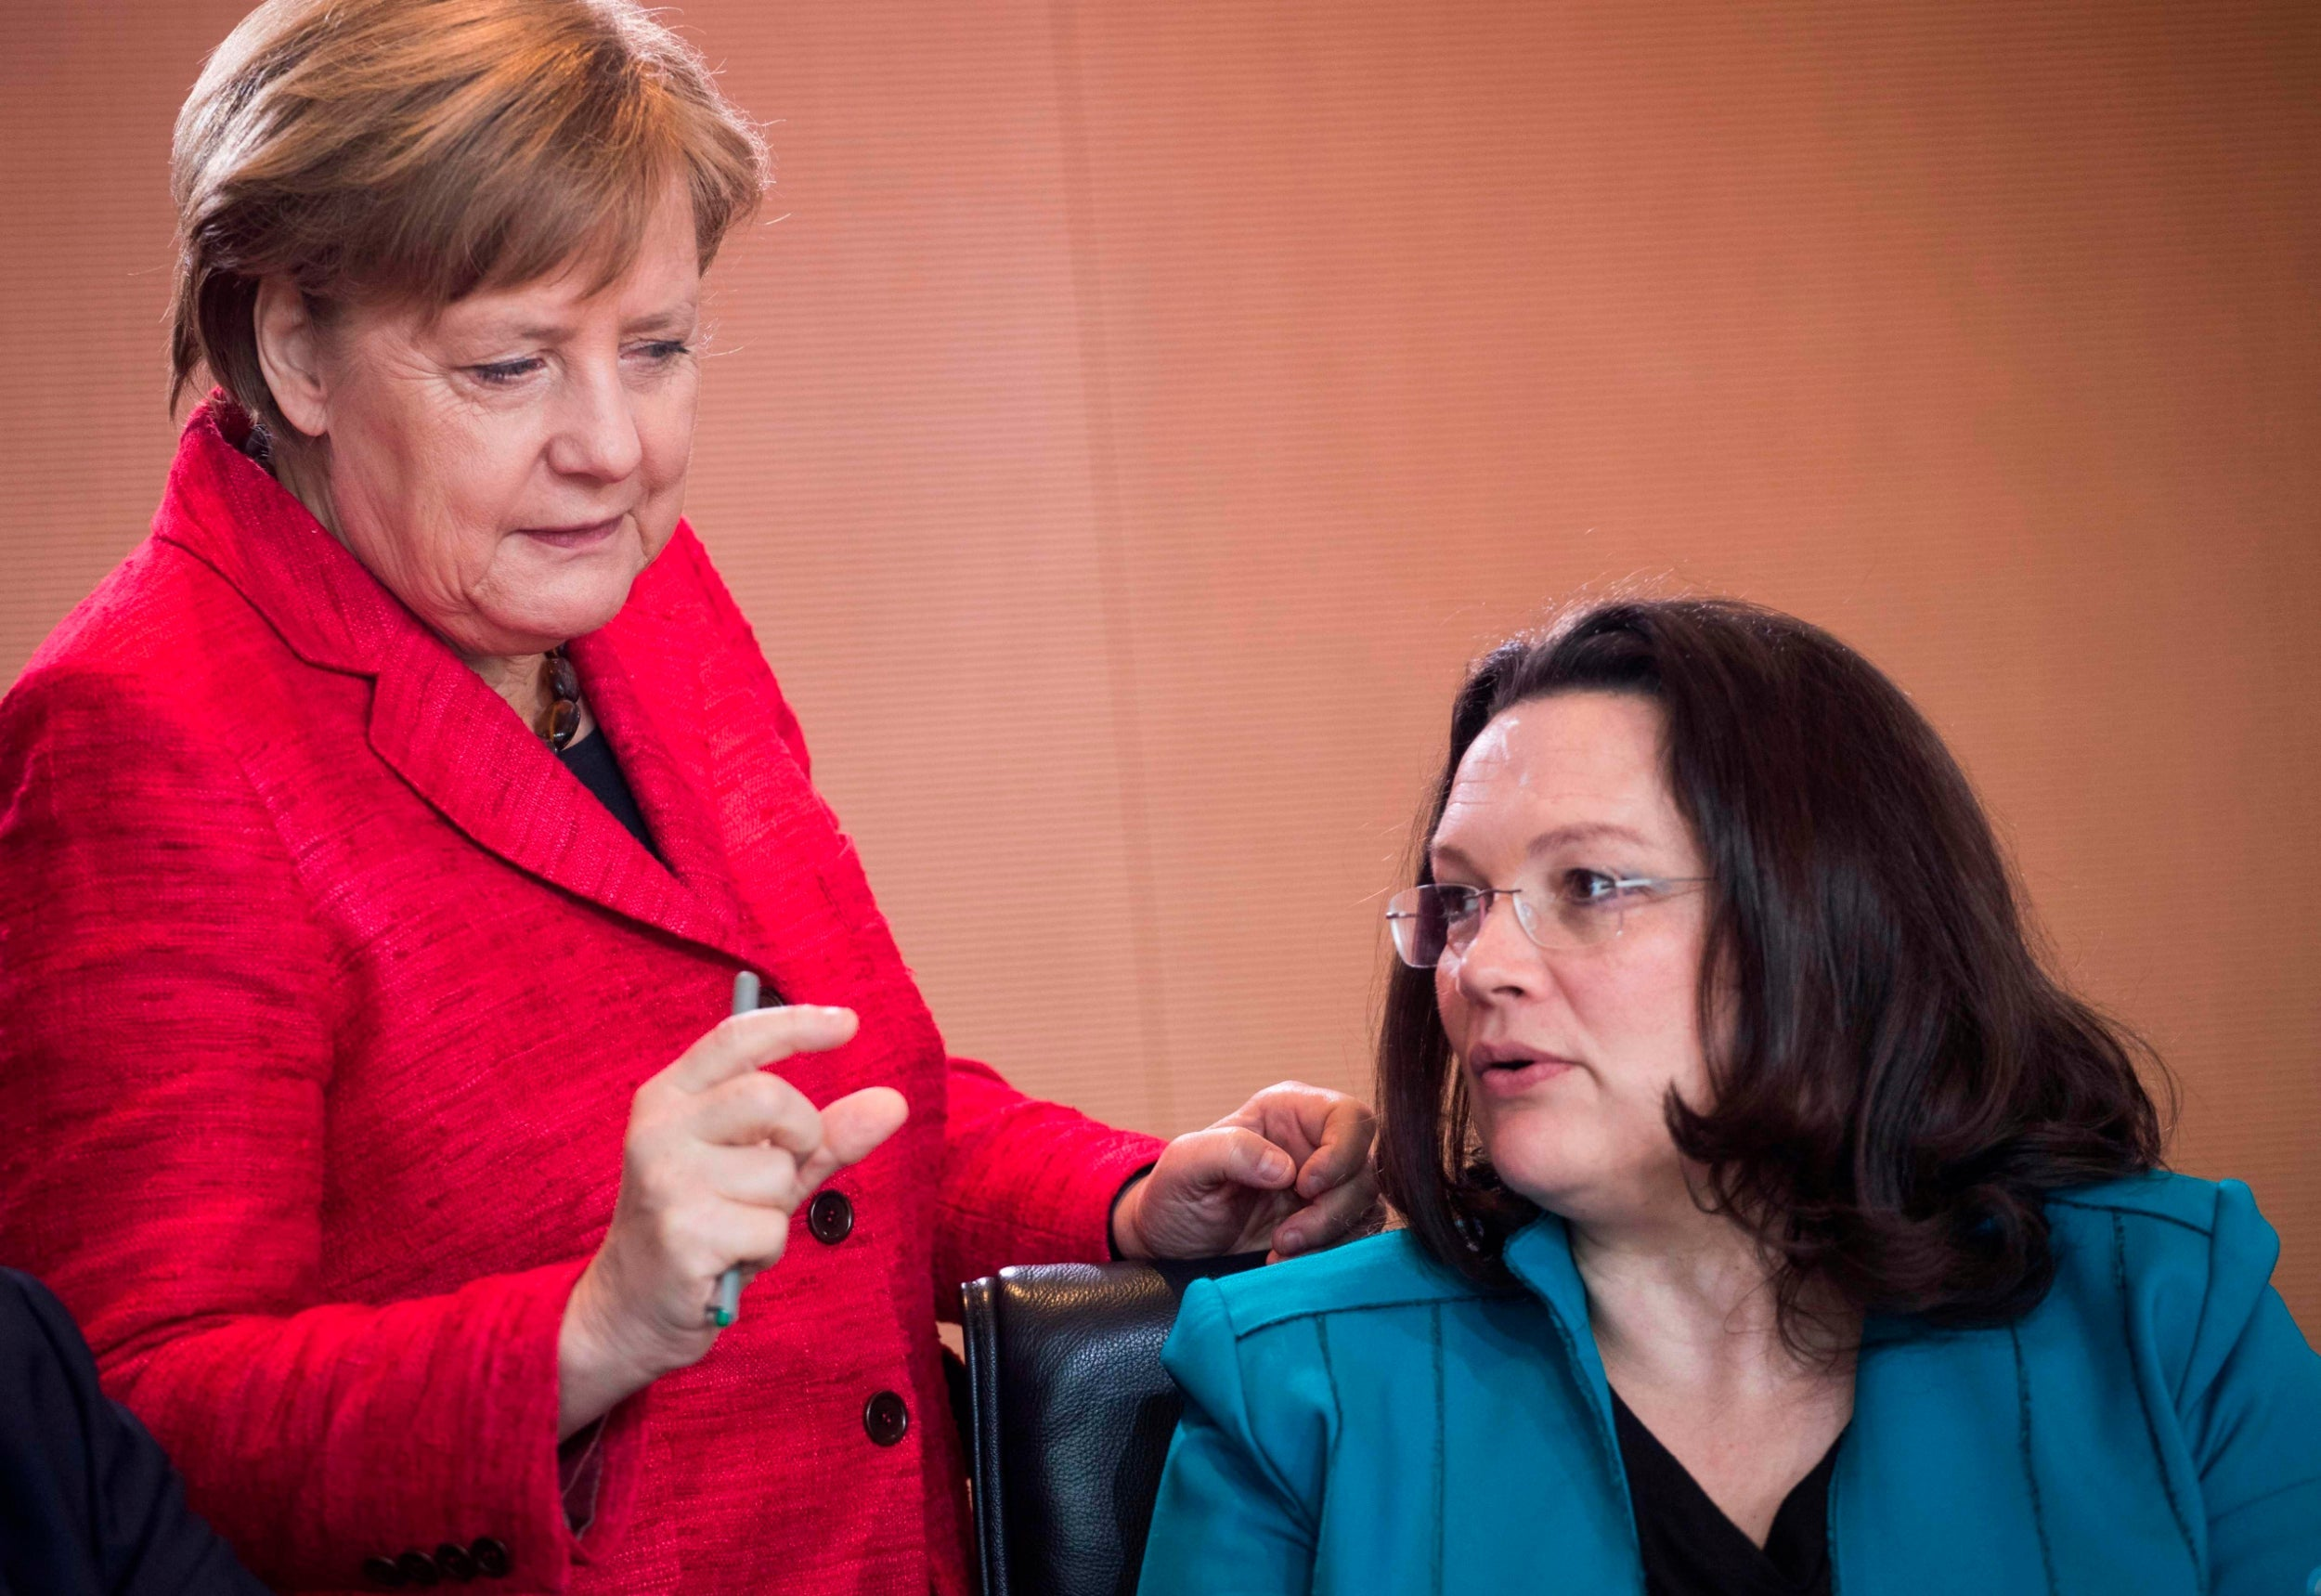 Merkel's government facing collapse as her coalition partner resigns over election disaster 6